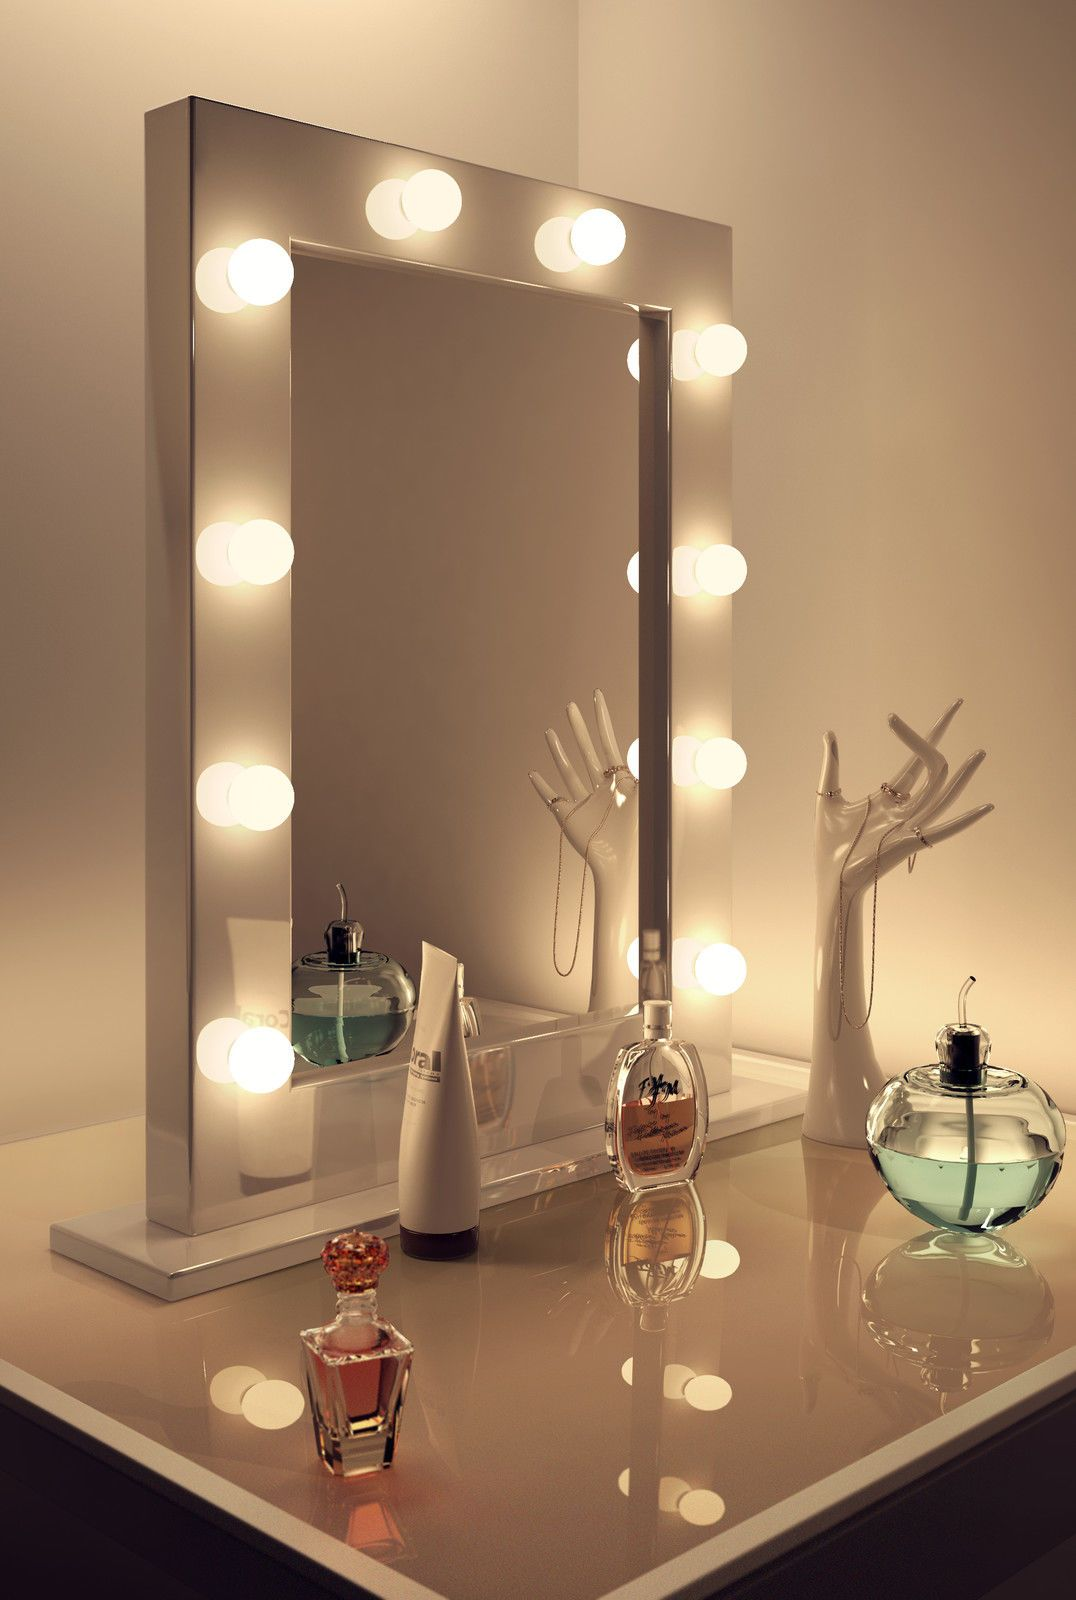 Miroir LOGE Maquillage Hollywood Blanc TRÈS Brillant K113 | eBay ...